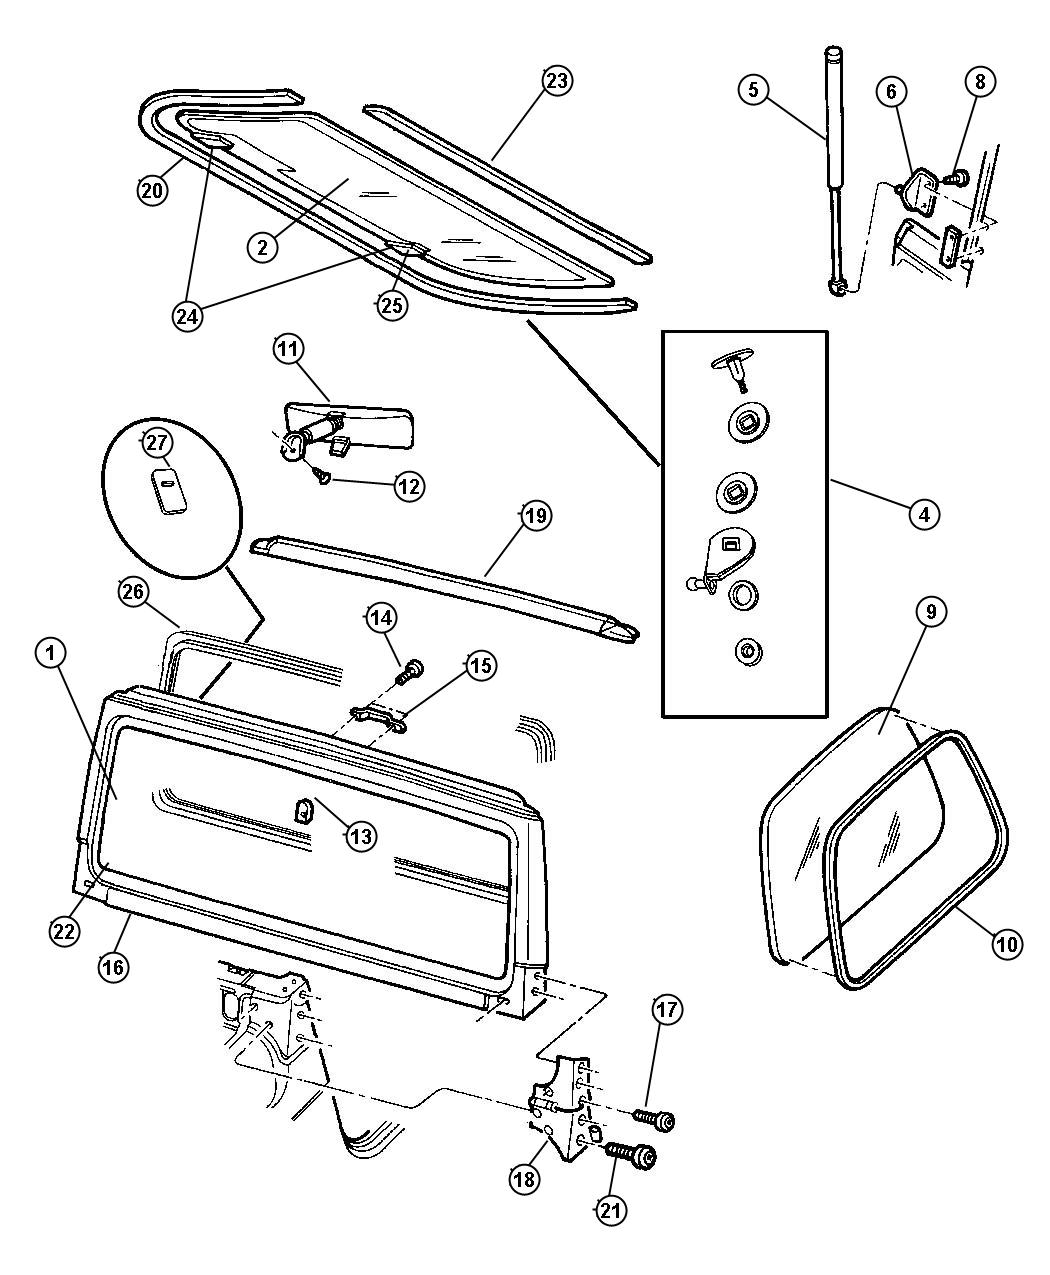 00i94749 Jeep Hard Top Wiring Diagram on jeep gas tank vent, jeep wiring time, jeep turn signal diagram, jeep shift solenoid, jeep hoses diagram, pioneer deh 150mp instalation diagram, jeep wiring harness, jeep o2 sensor wiring, jeep engineering diagram, jeep stock speakers, jeep horn diagram, jeep exhaust system diagram, jeep relay wiring, jeep driveline diagram, jeep headlight diagram, jeep fuses diagram, jeep electrical diagram, jeep pump diagram, jeep pulley diagram, jeep lights diagram,